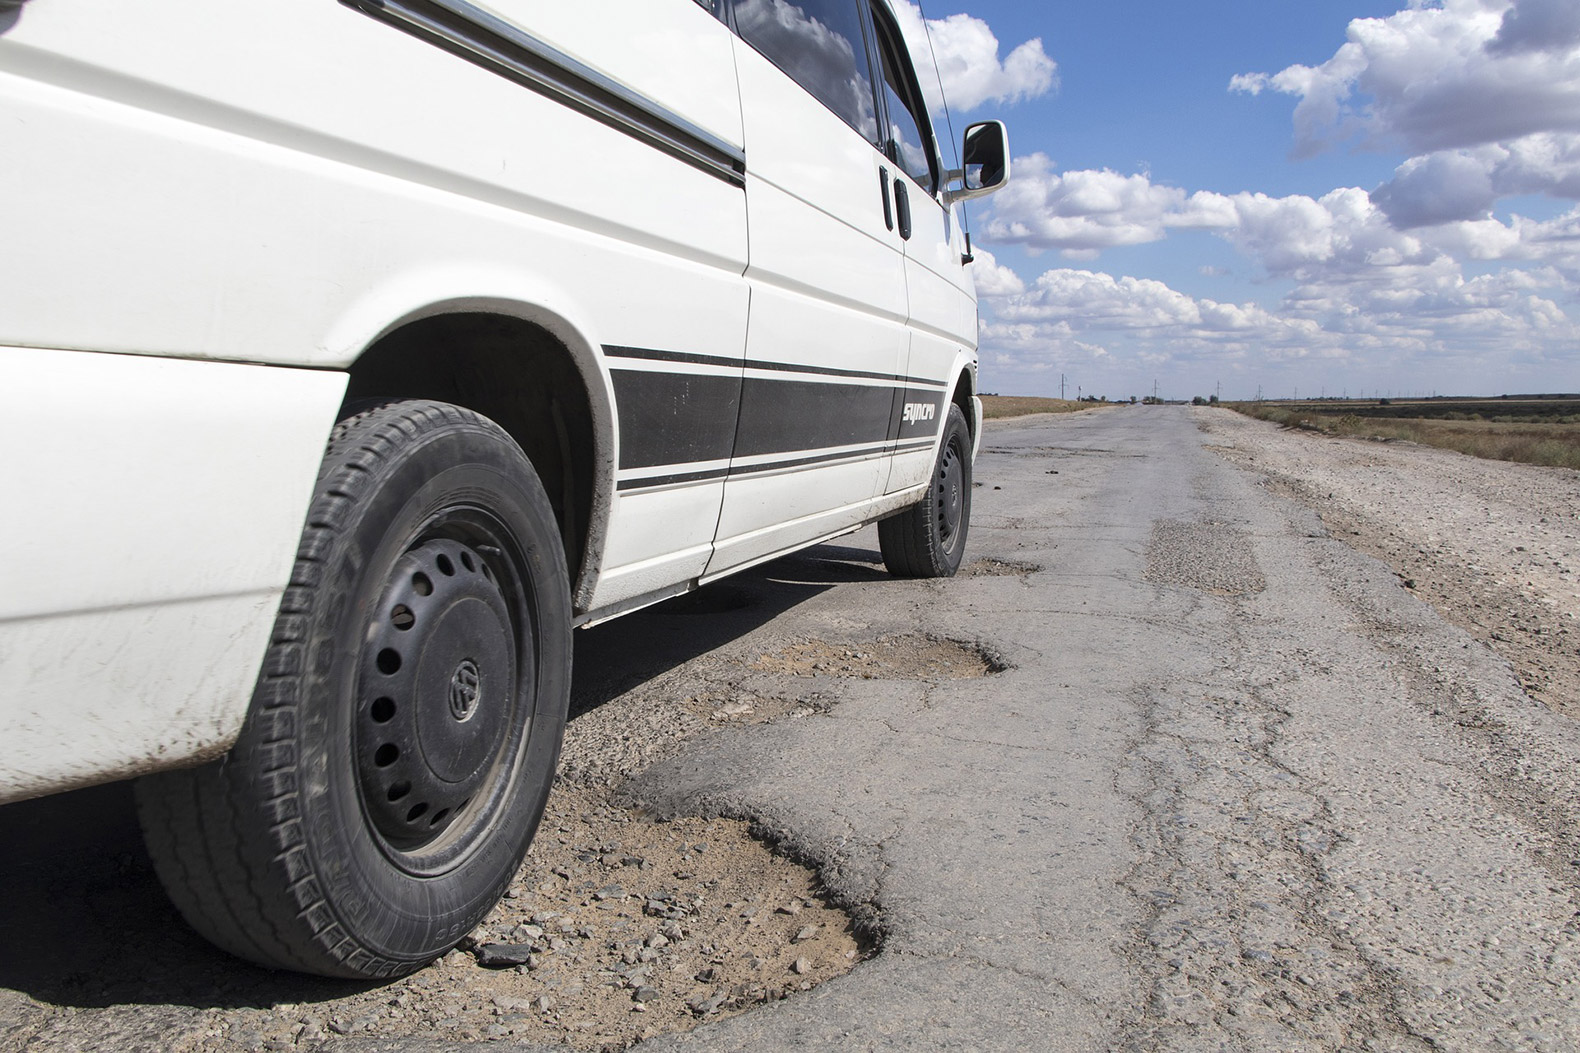 The Netherlands is developing self-healing roads that fix potholes automatically